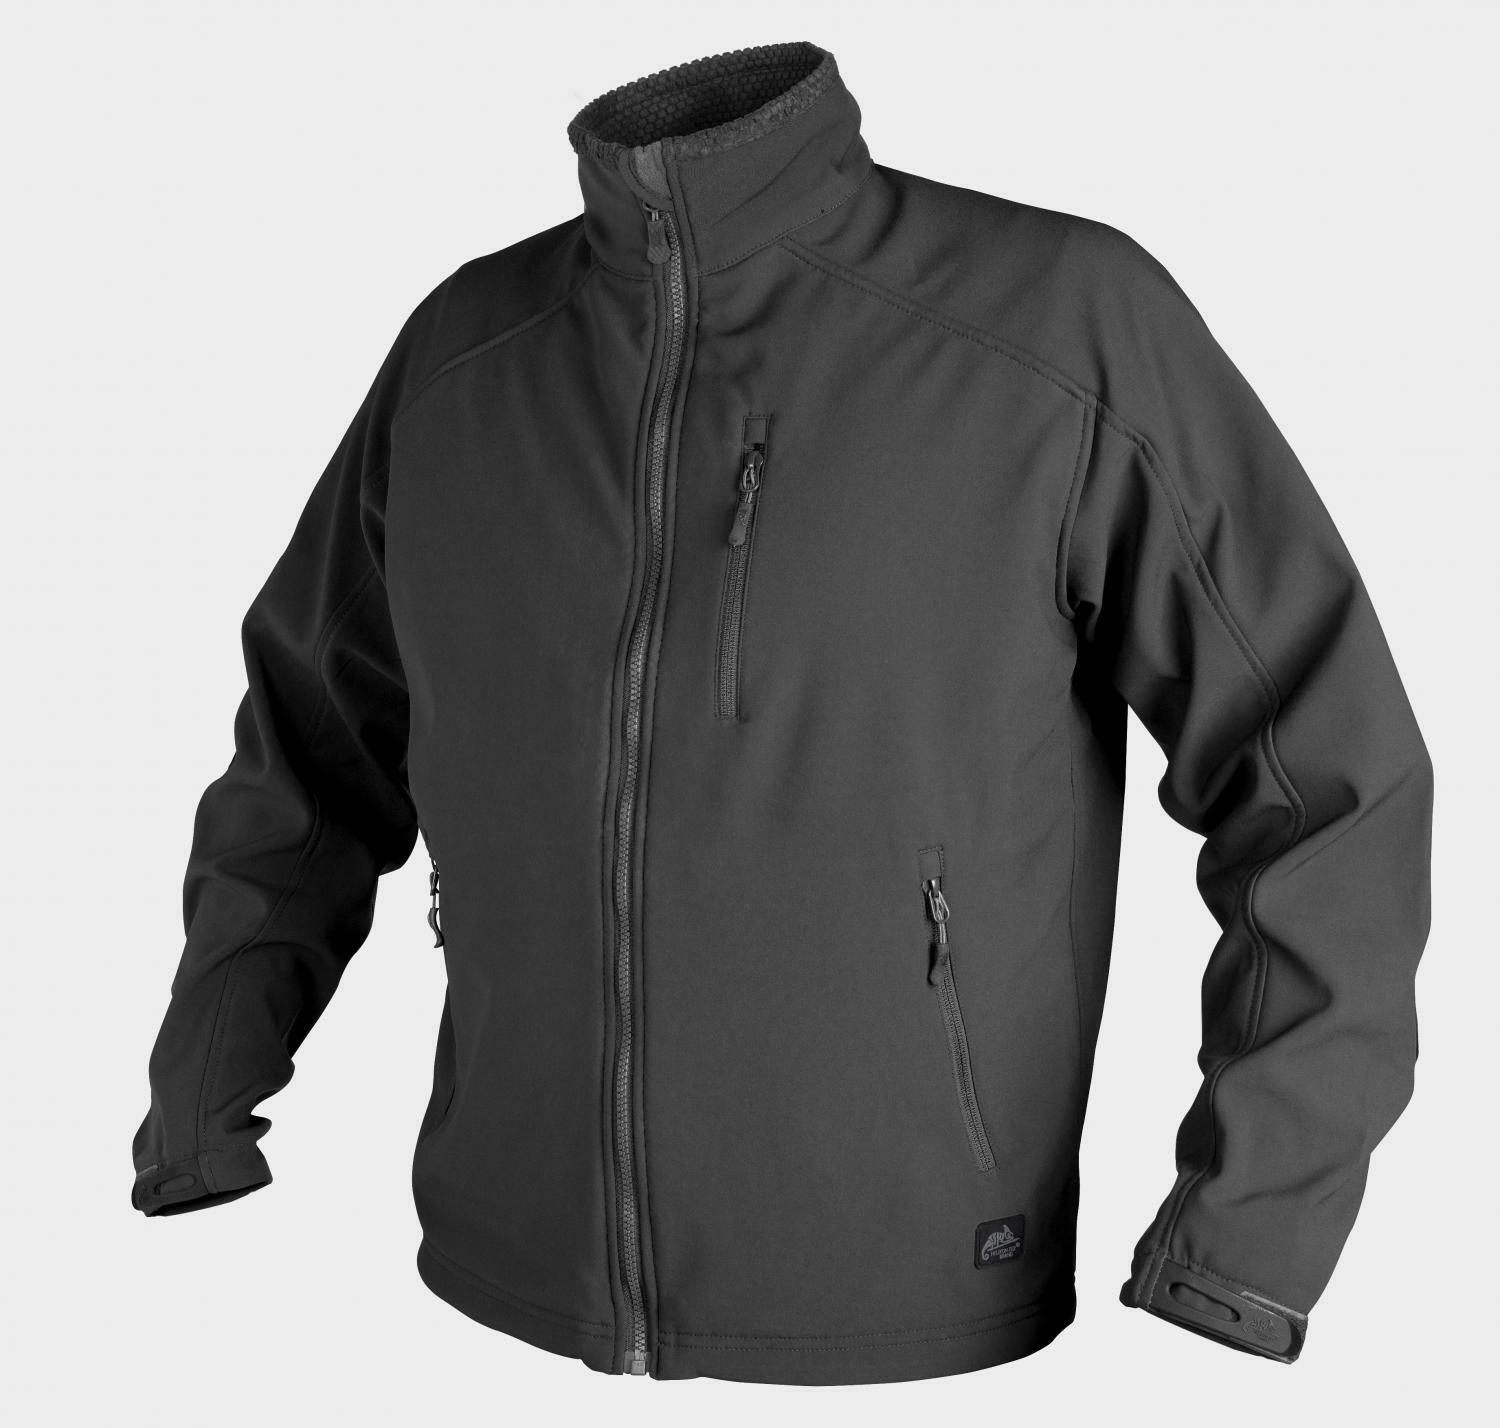 Helikon Tex Delta Lightwight Softshell Outdoor Giacca Giacca negro negro Small